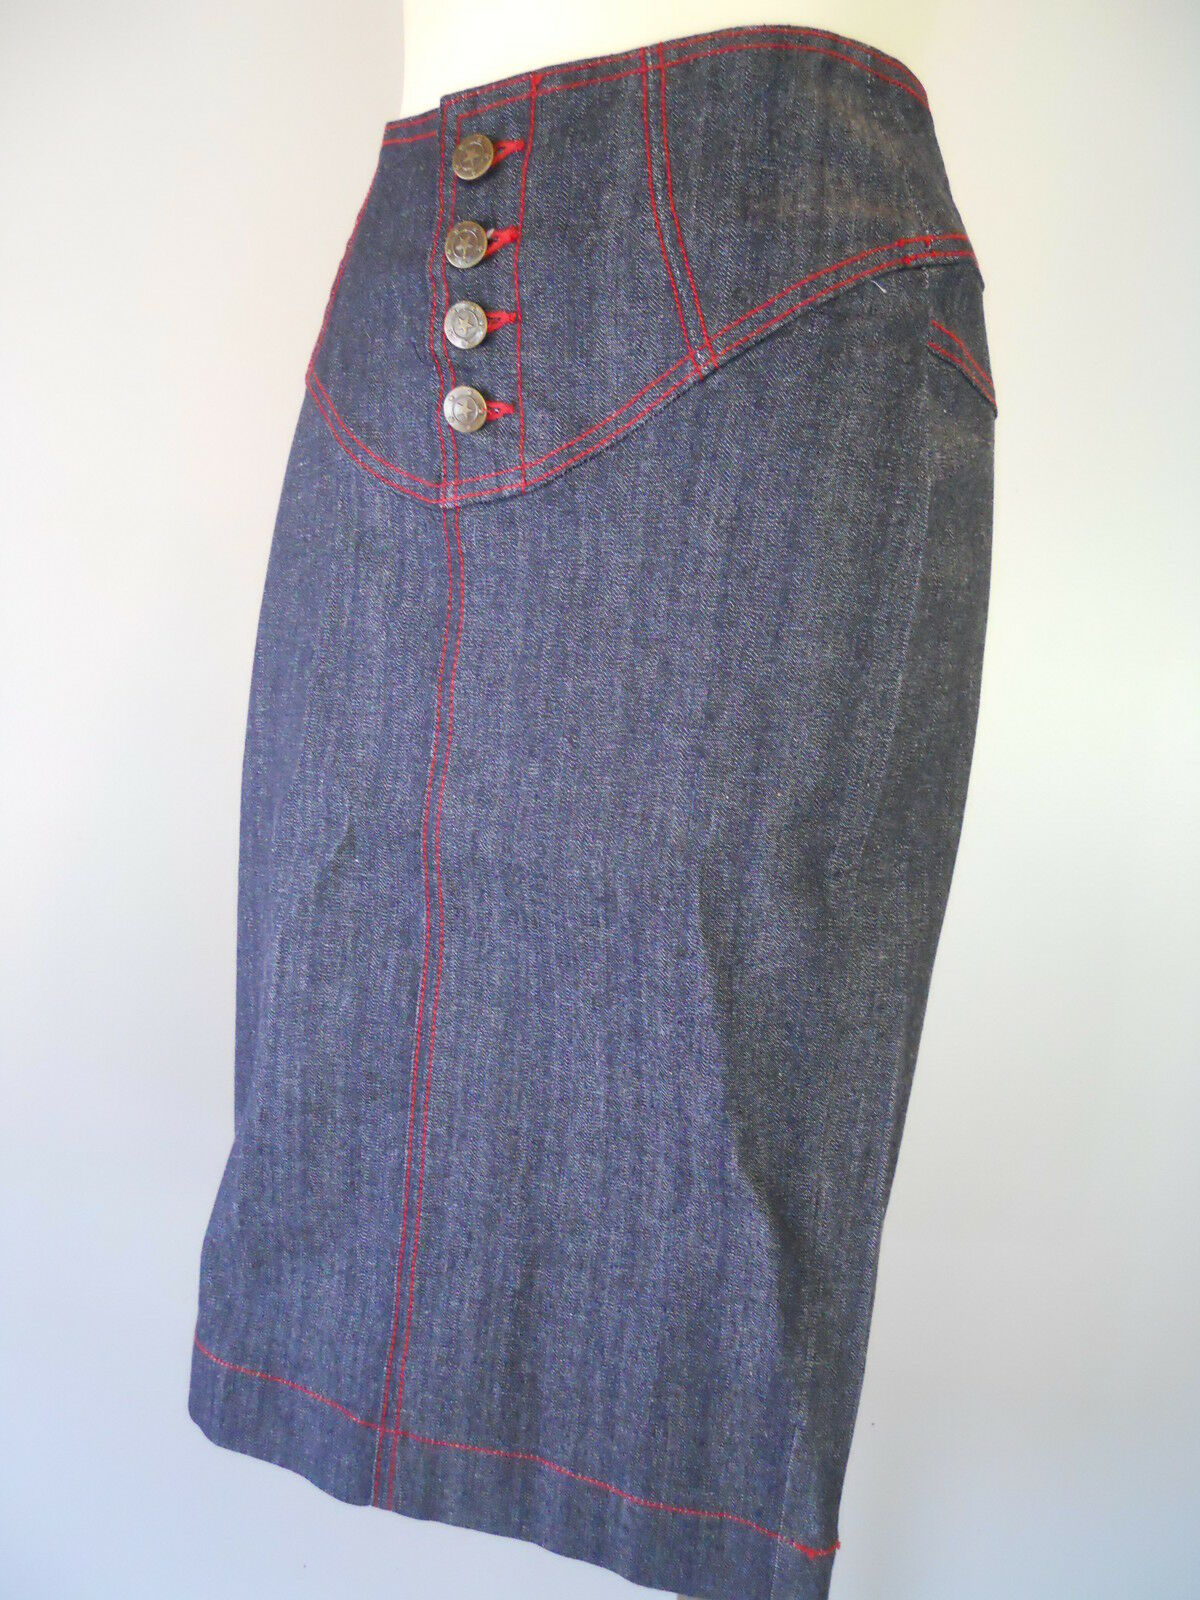 Nos Lip Service Western Cowgirl Navy bluee Jeans Pencil Skirt Pinup Rocabilly S